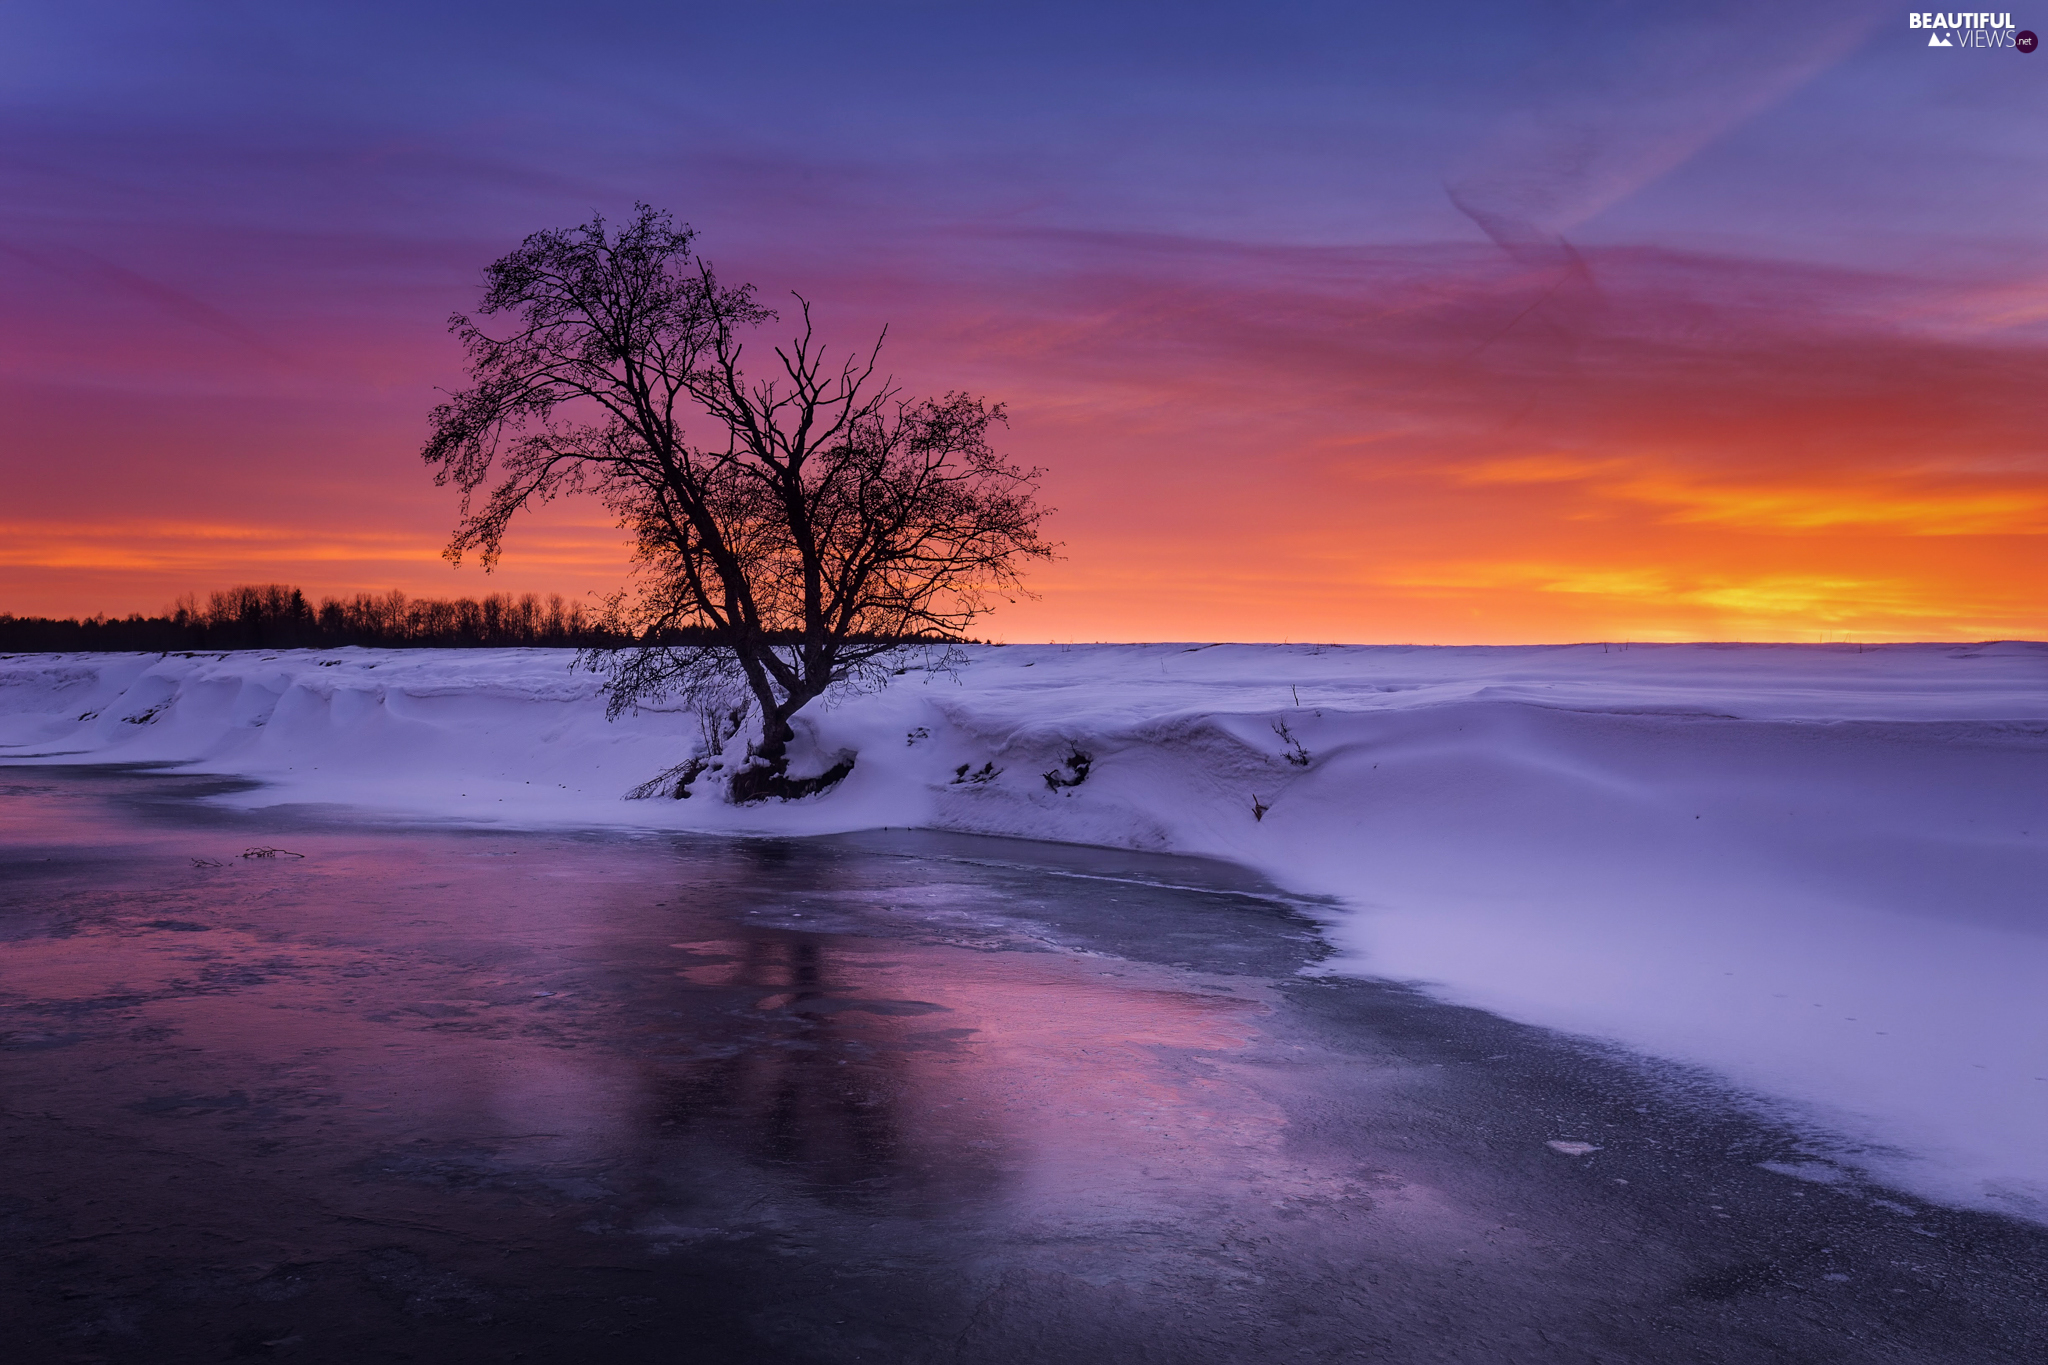 trees, River, snow, winter, Great Sunsets, Icecream